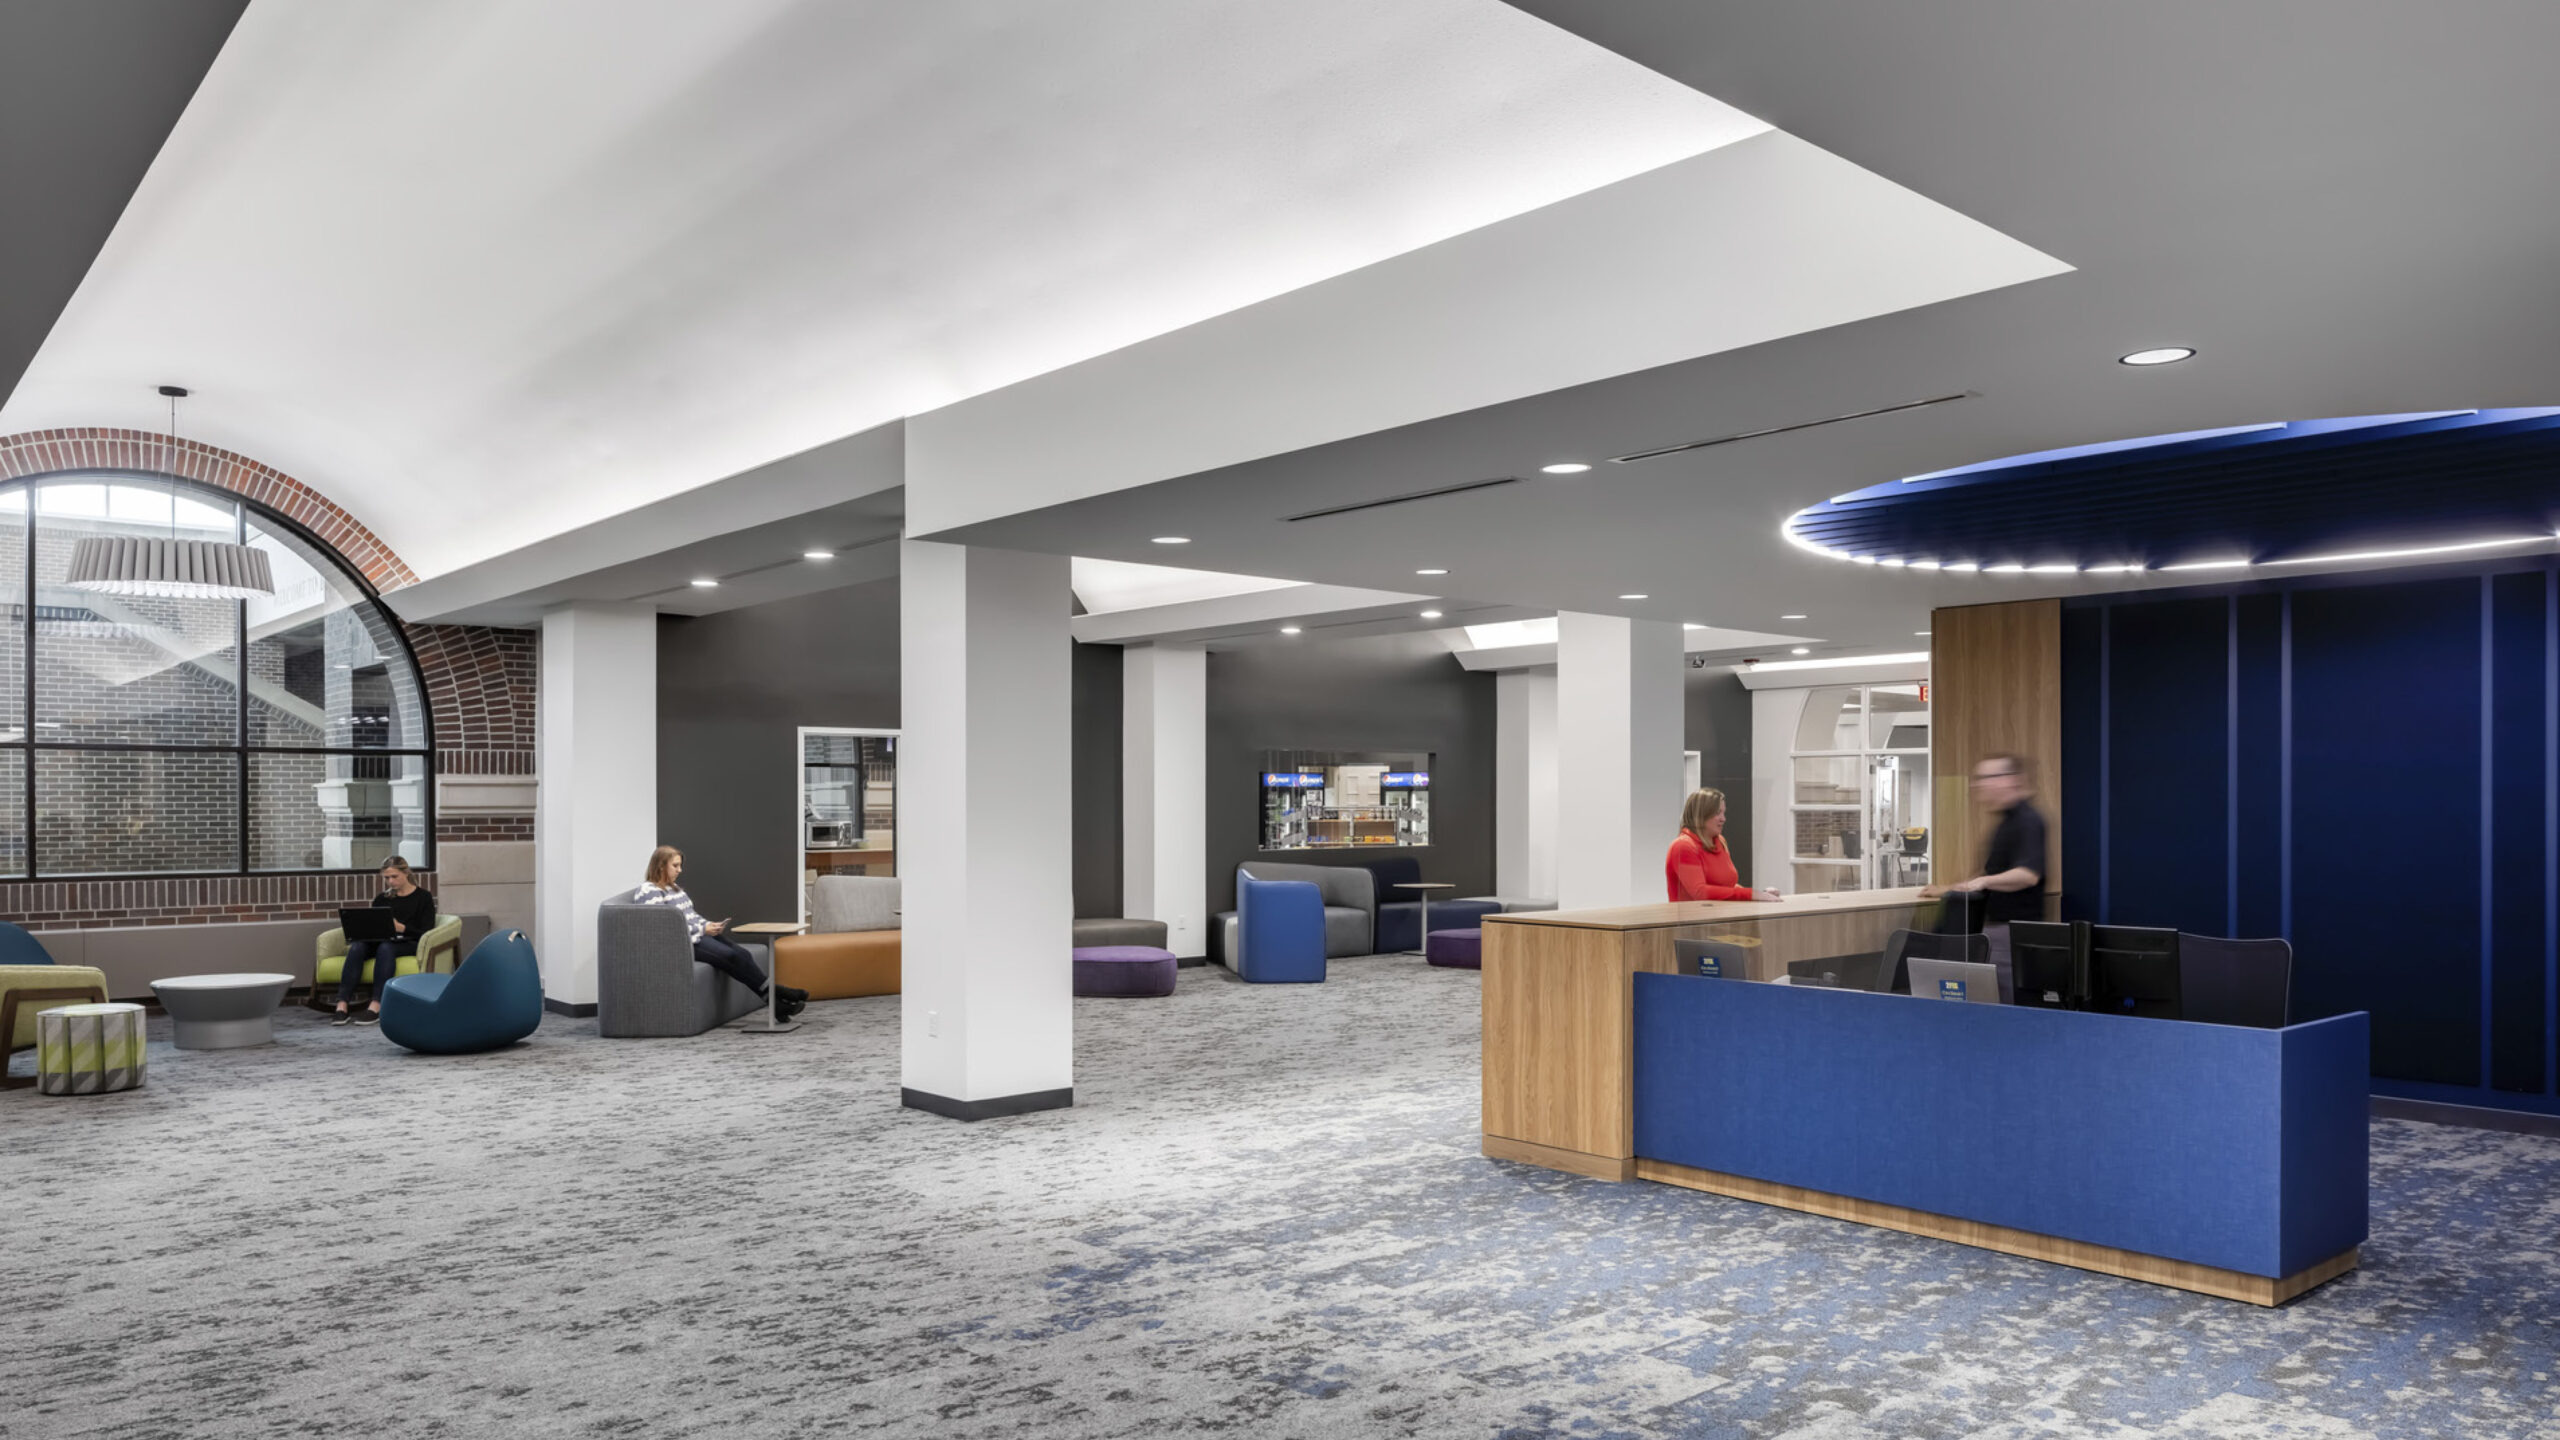 A library welcome desk with blue wayfinding elements.